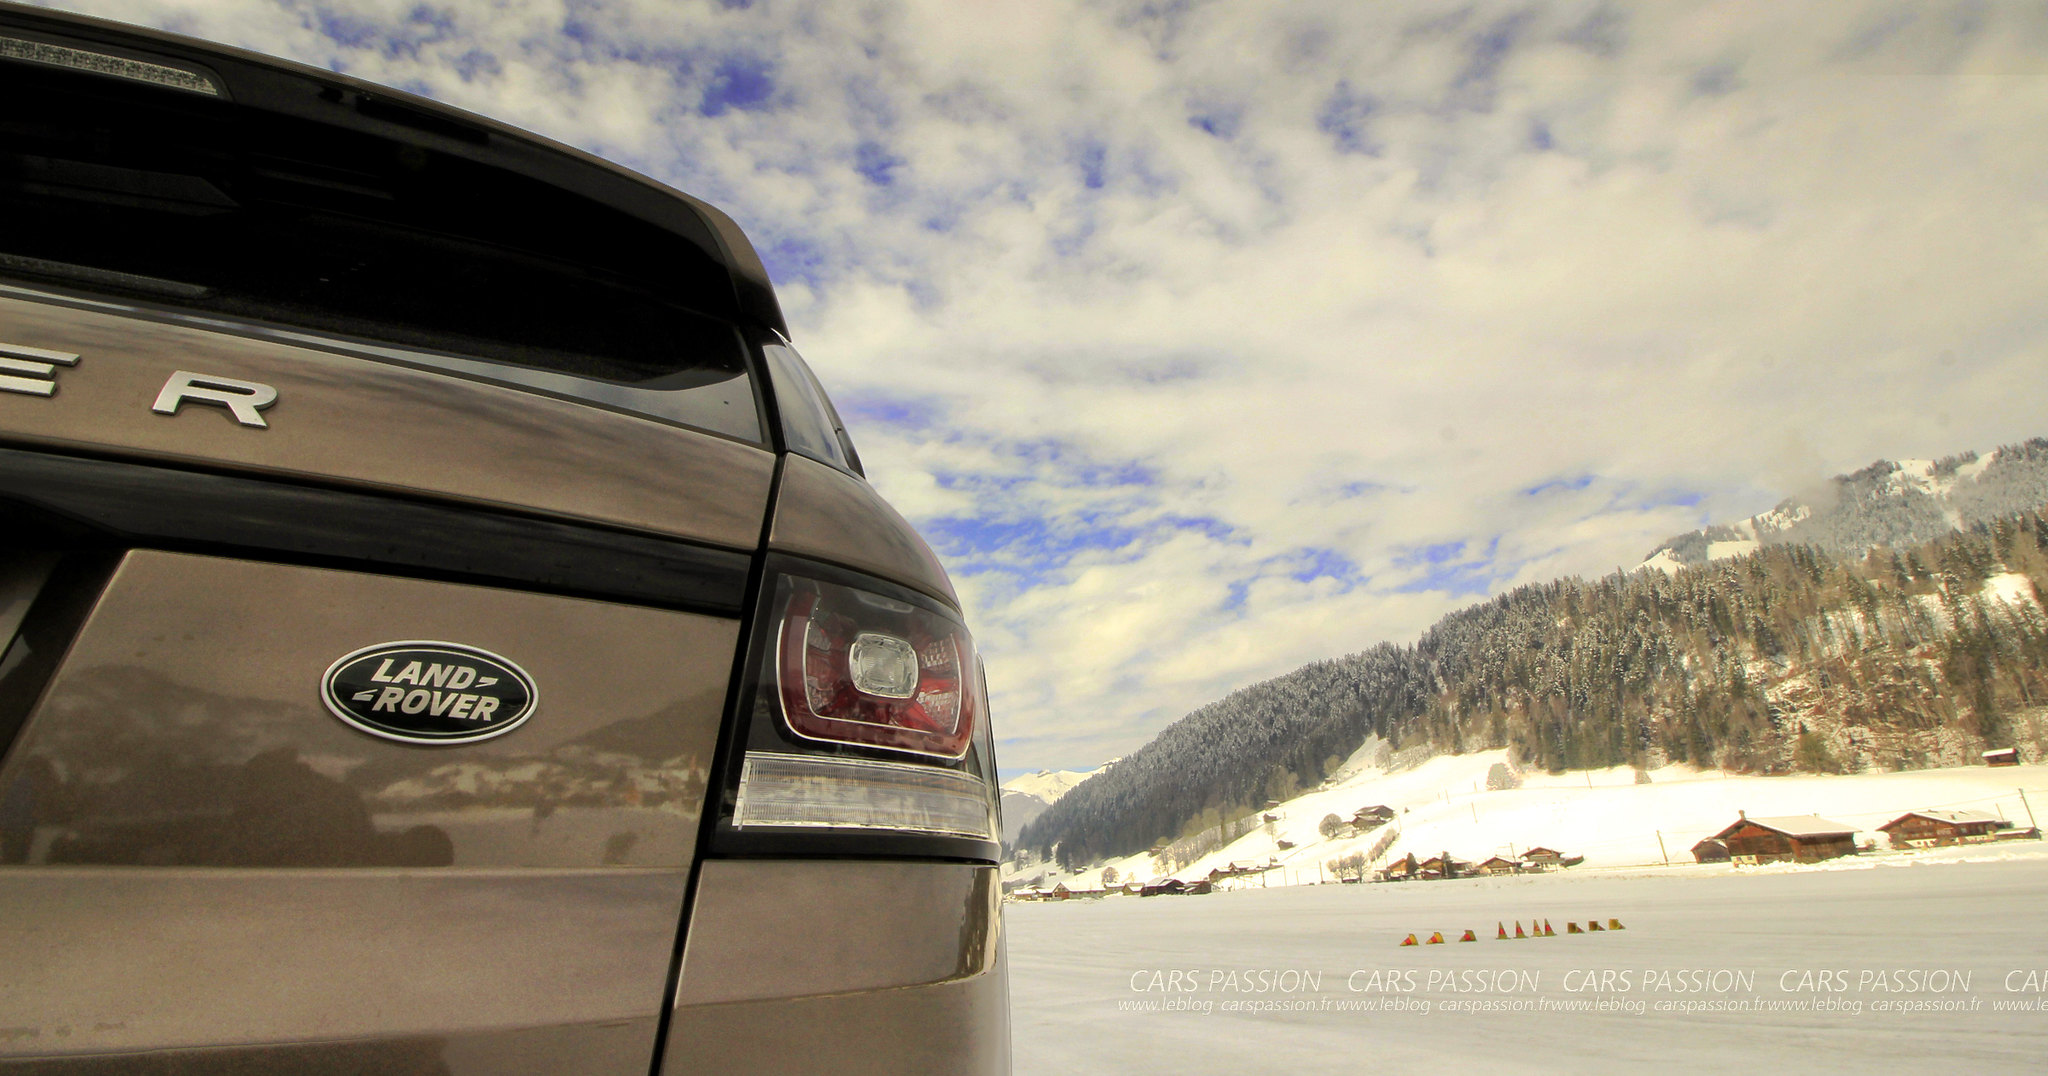 jaguar-land-rover-ice-drivng-esperience-gstaad (16)